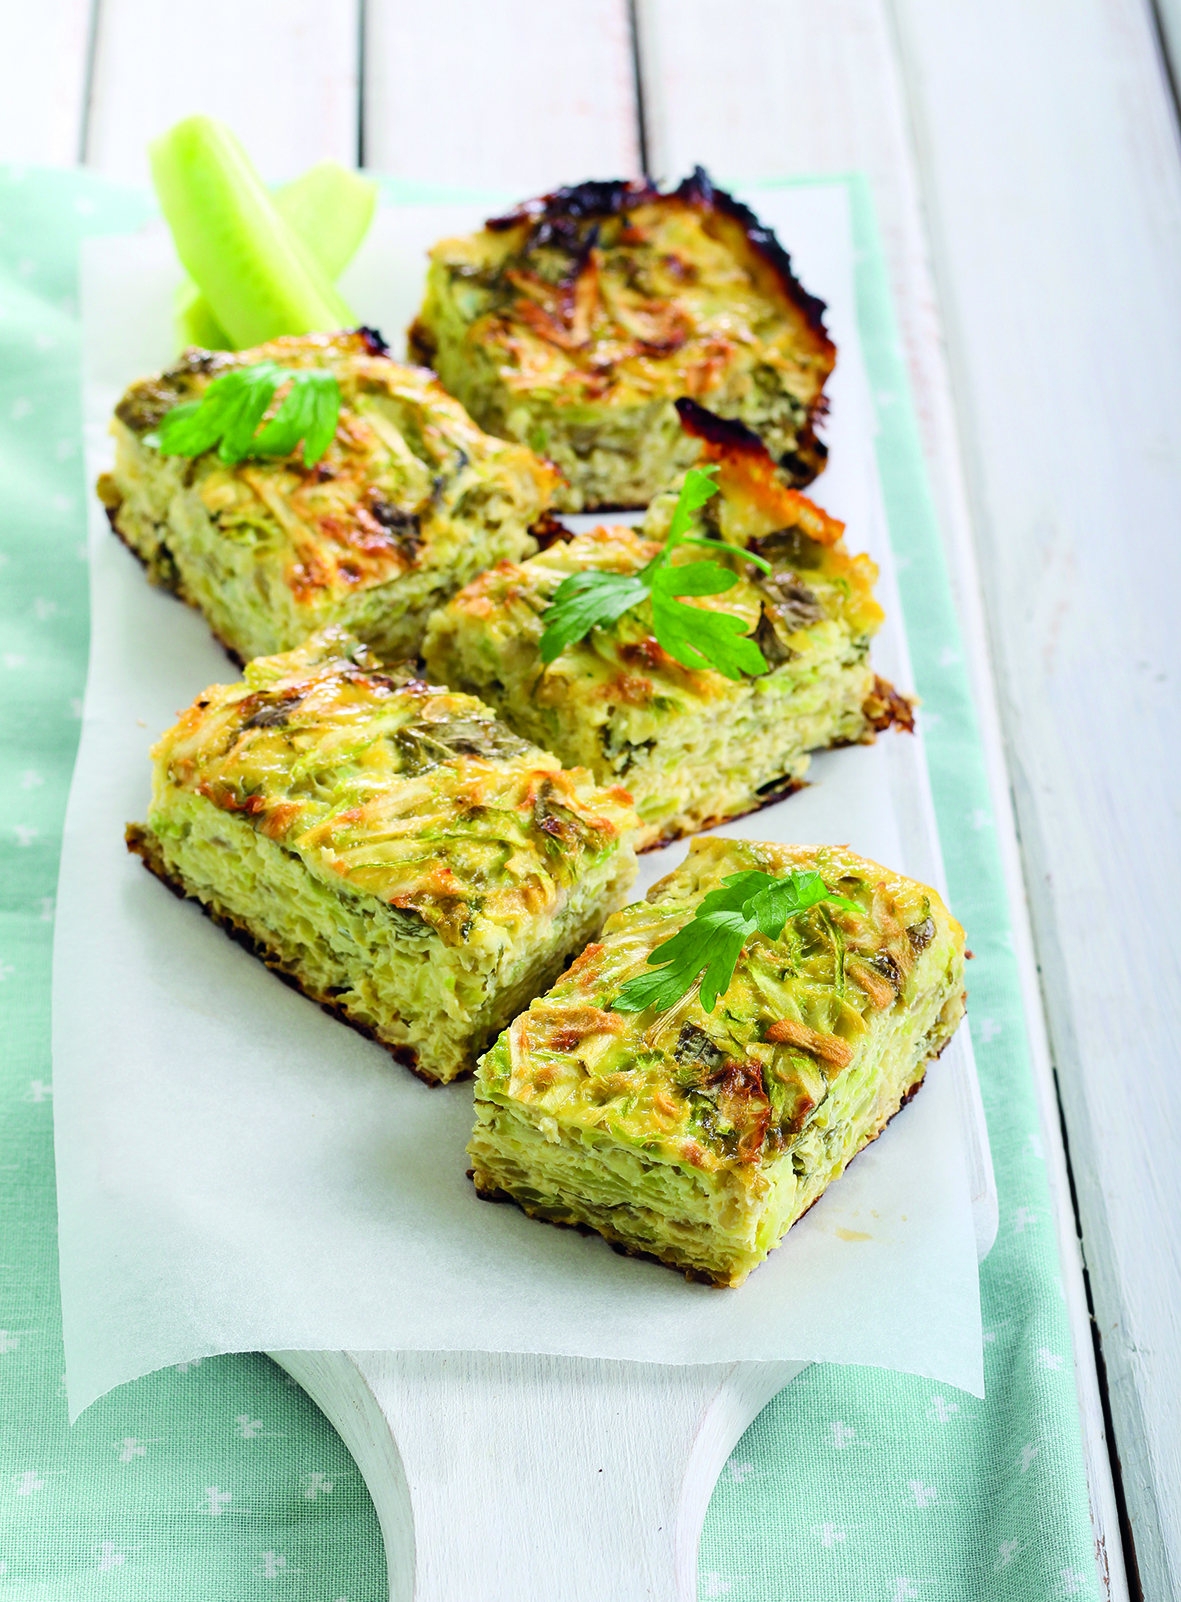 Green Eggs & Ham frittata from The Friendliest Lunchbox Book